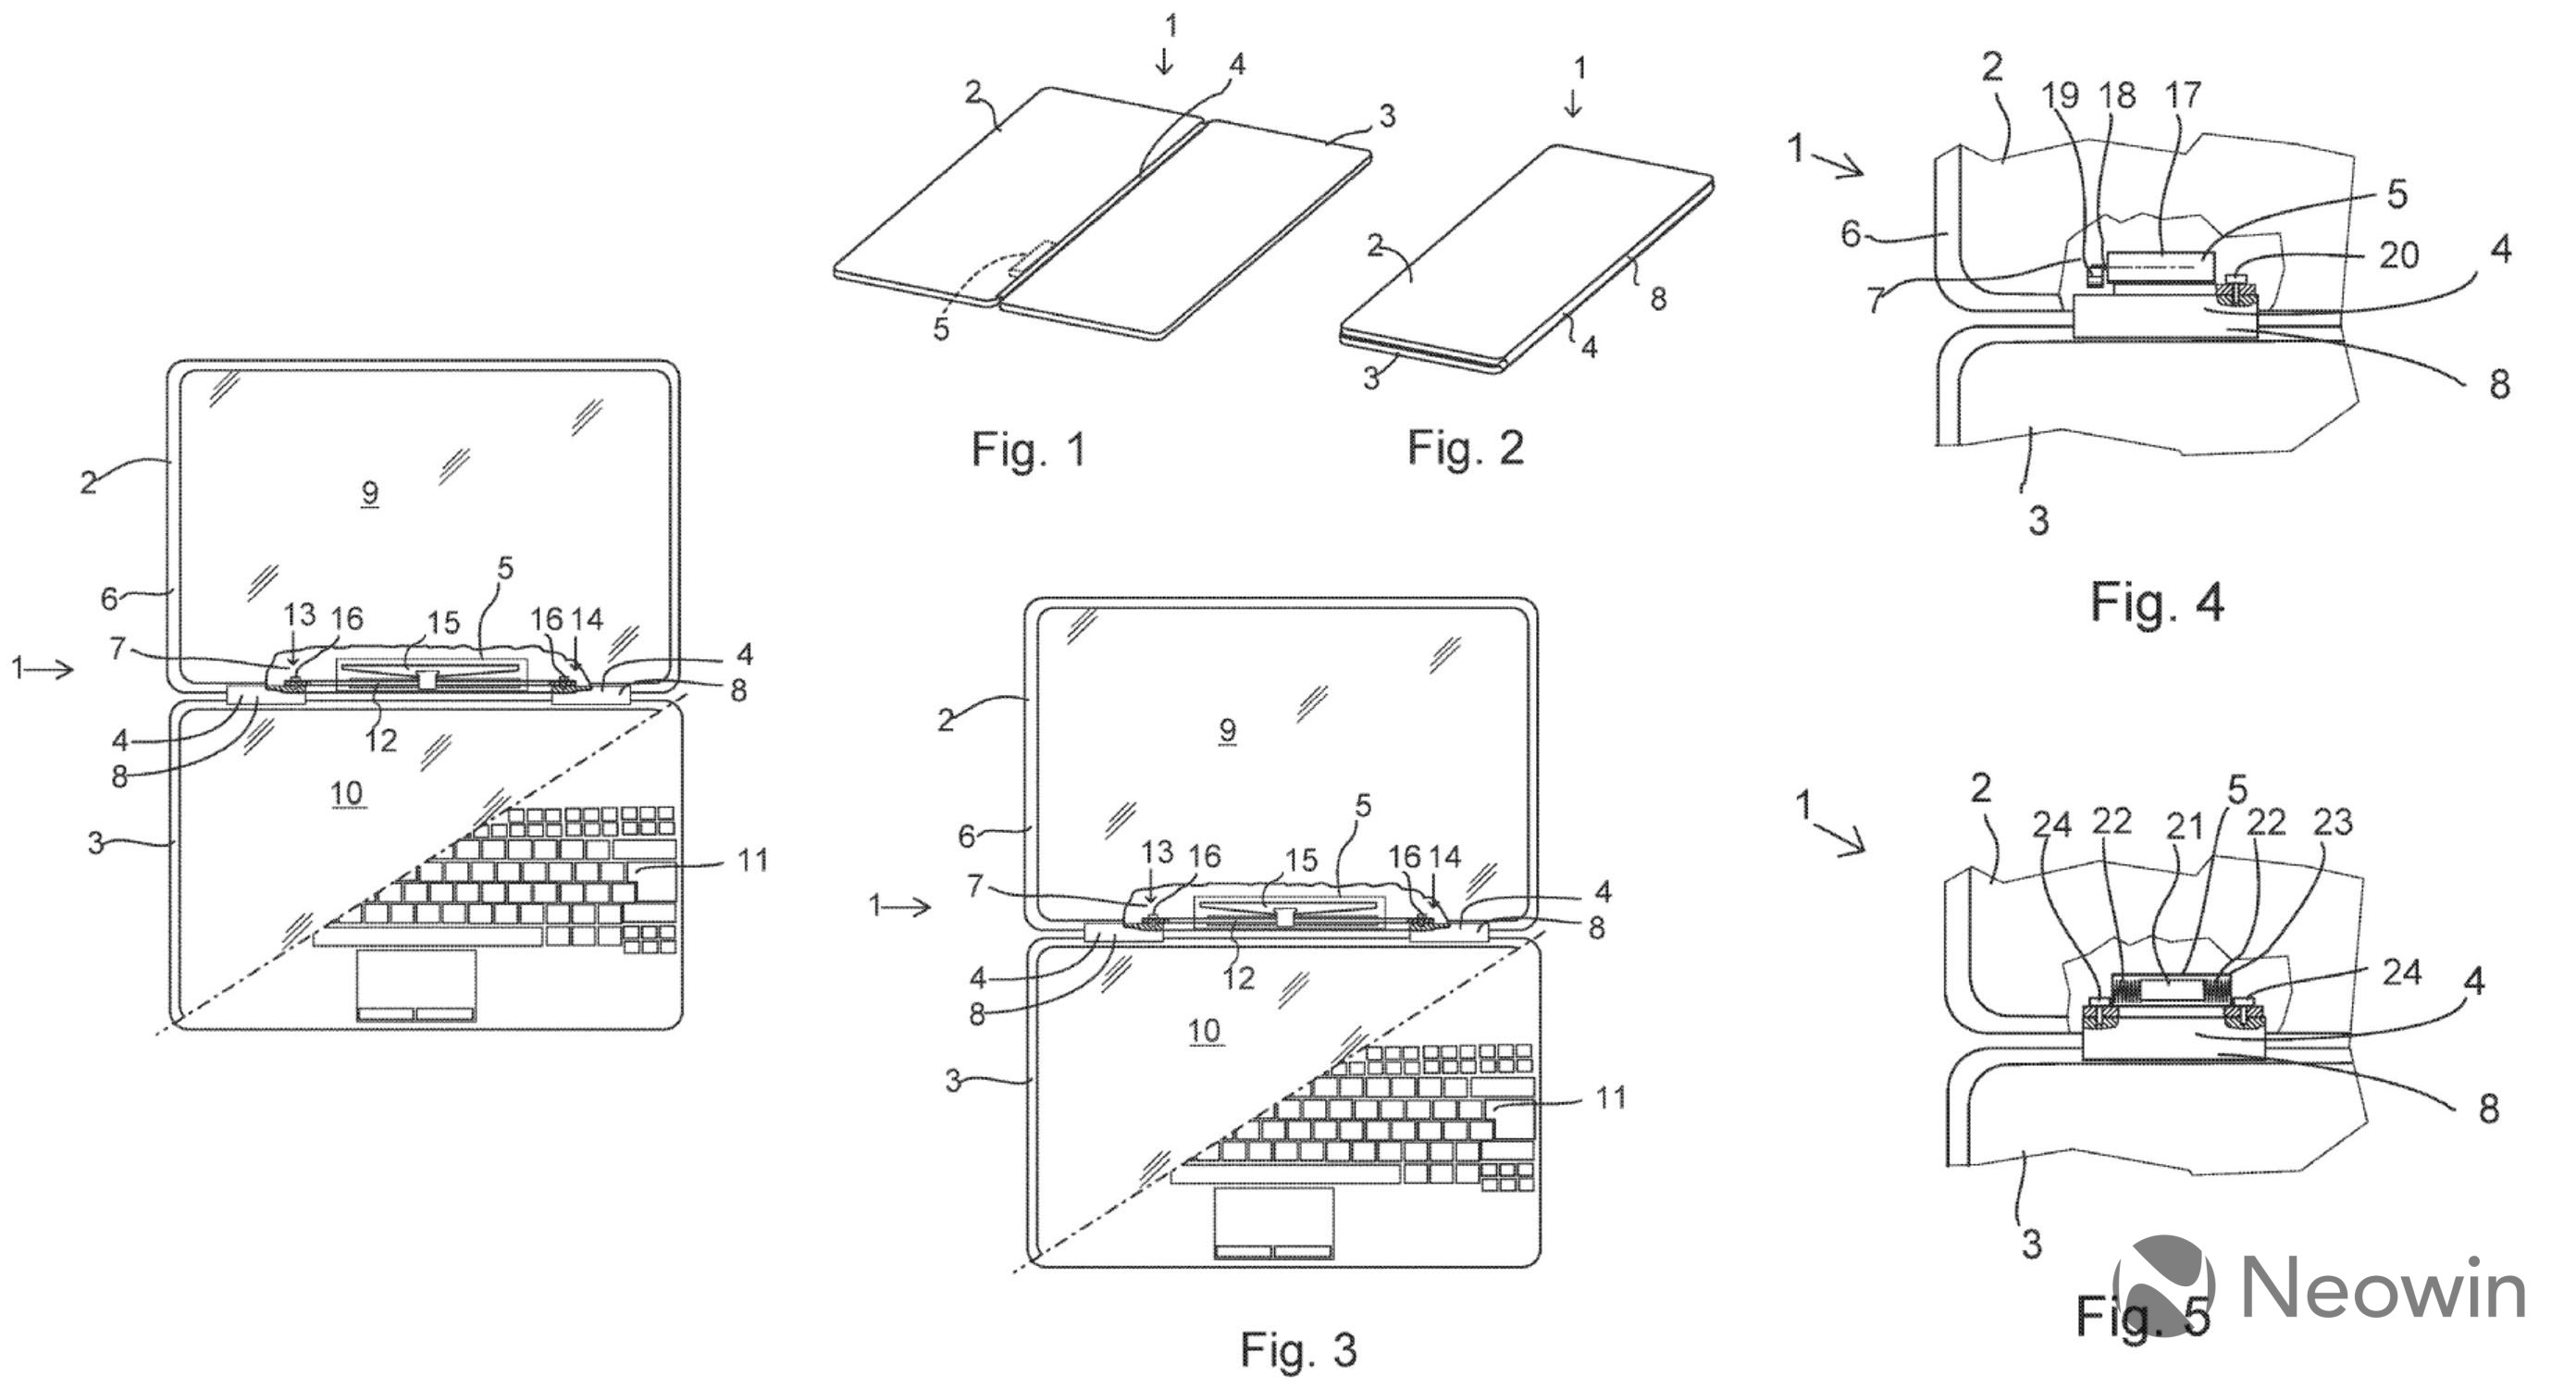 Yet another patent hints towards Microsoft's alleged Andromeda device